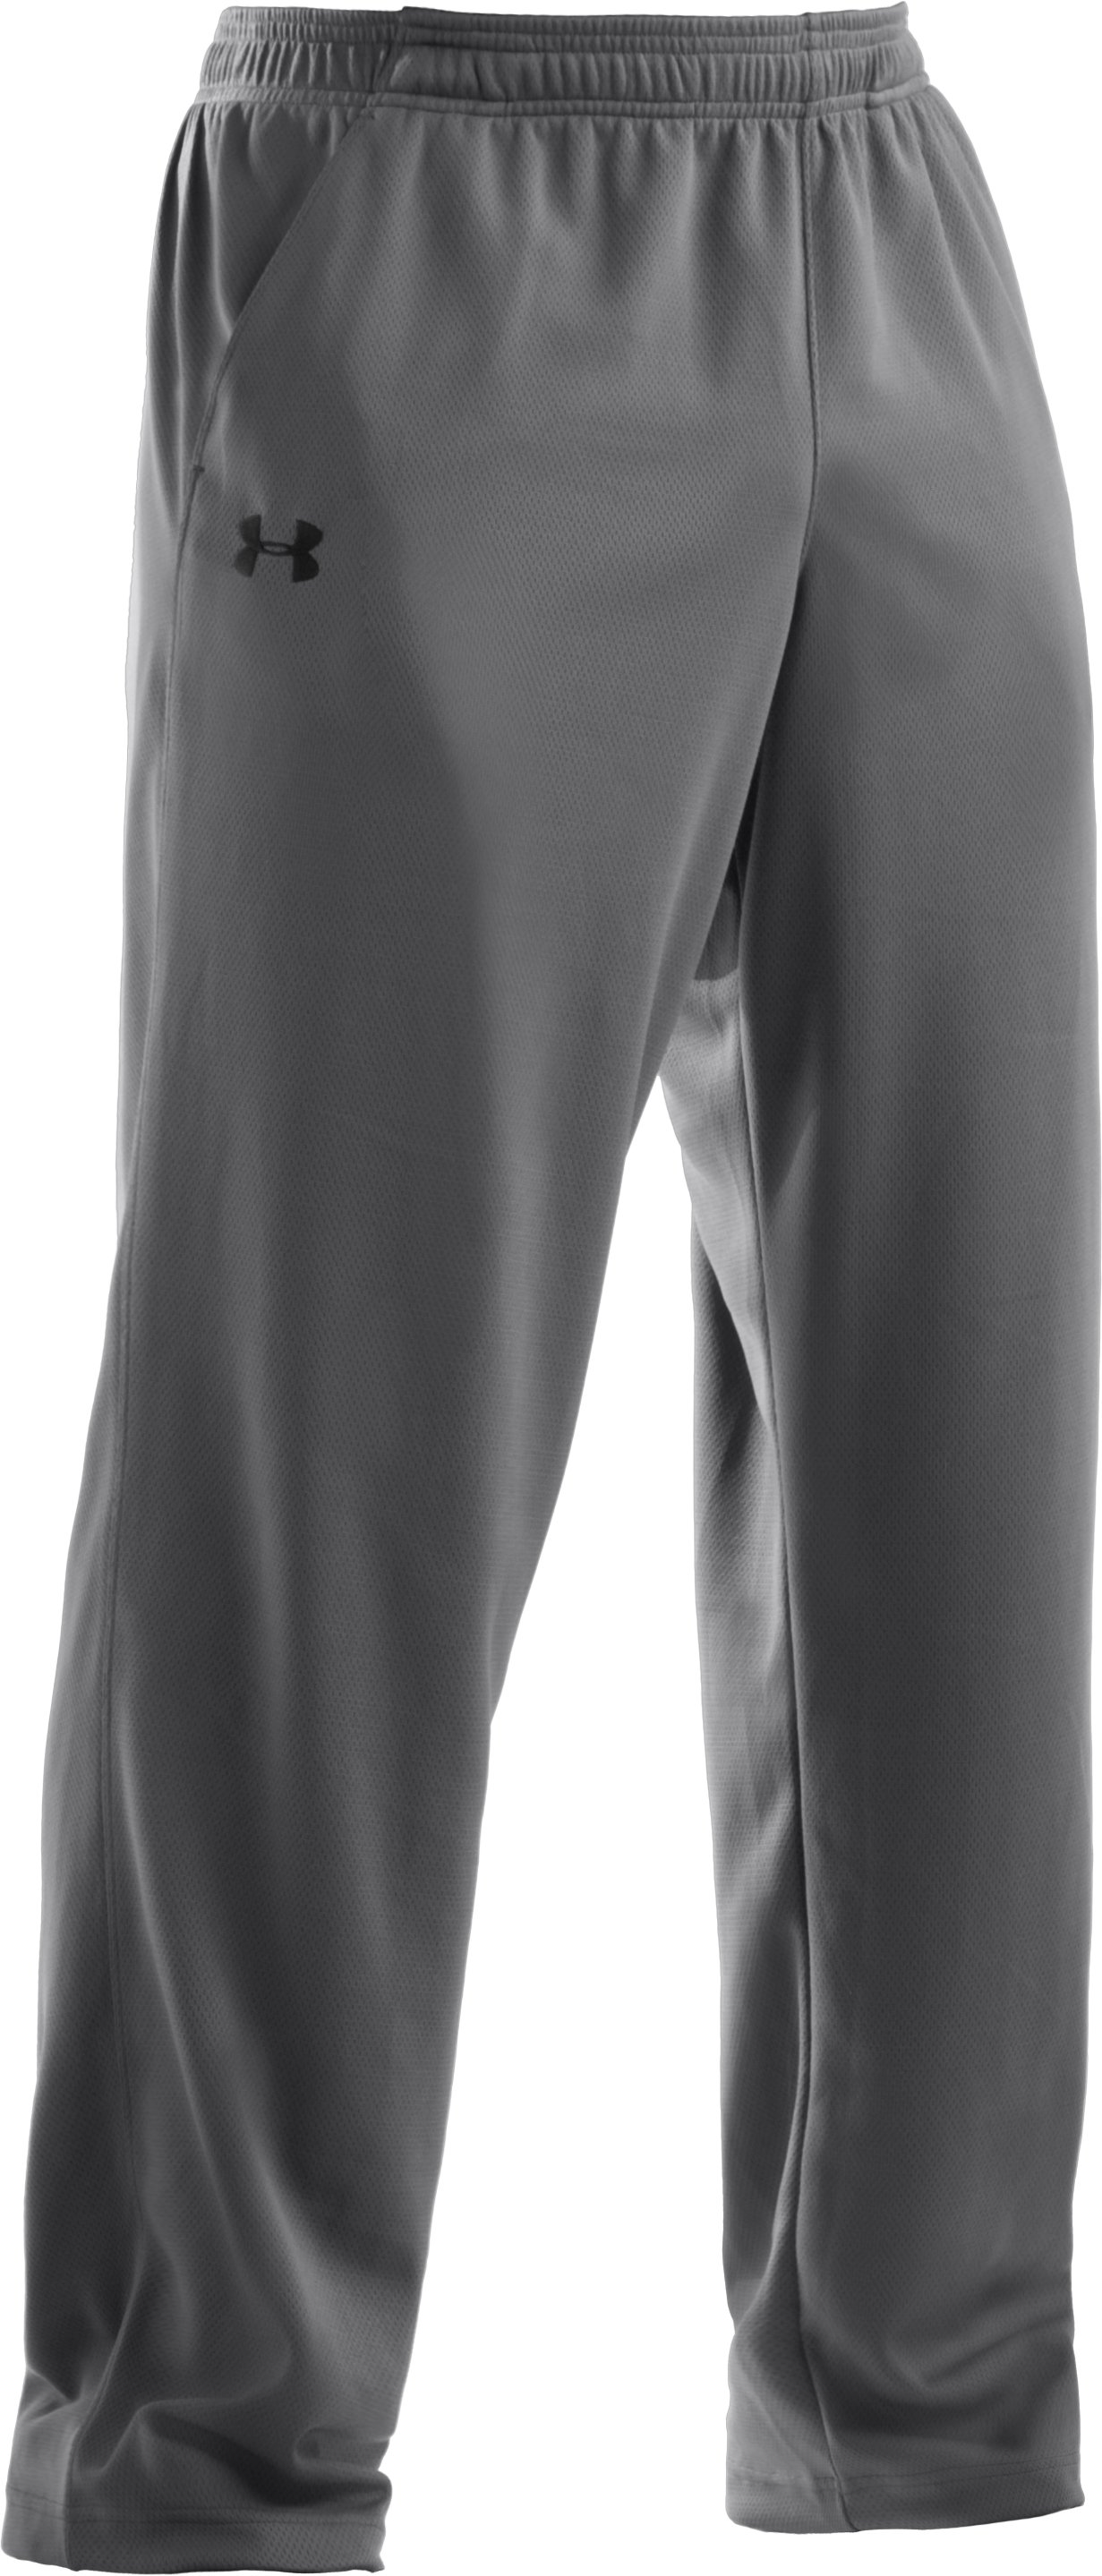 Men's UA Flex Warm-Up Pants, Graphite